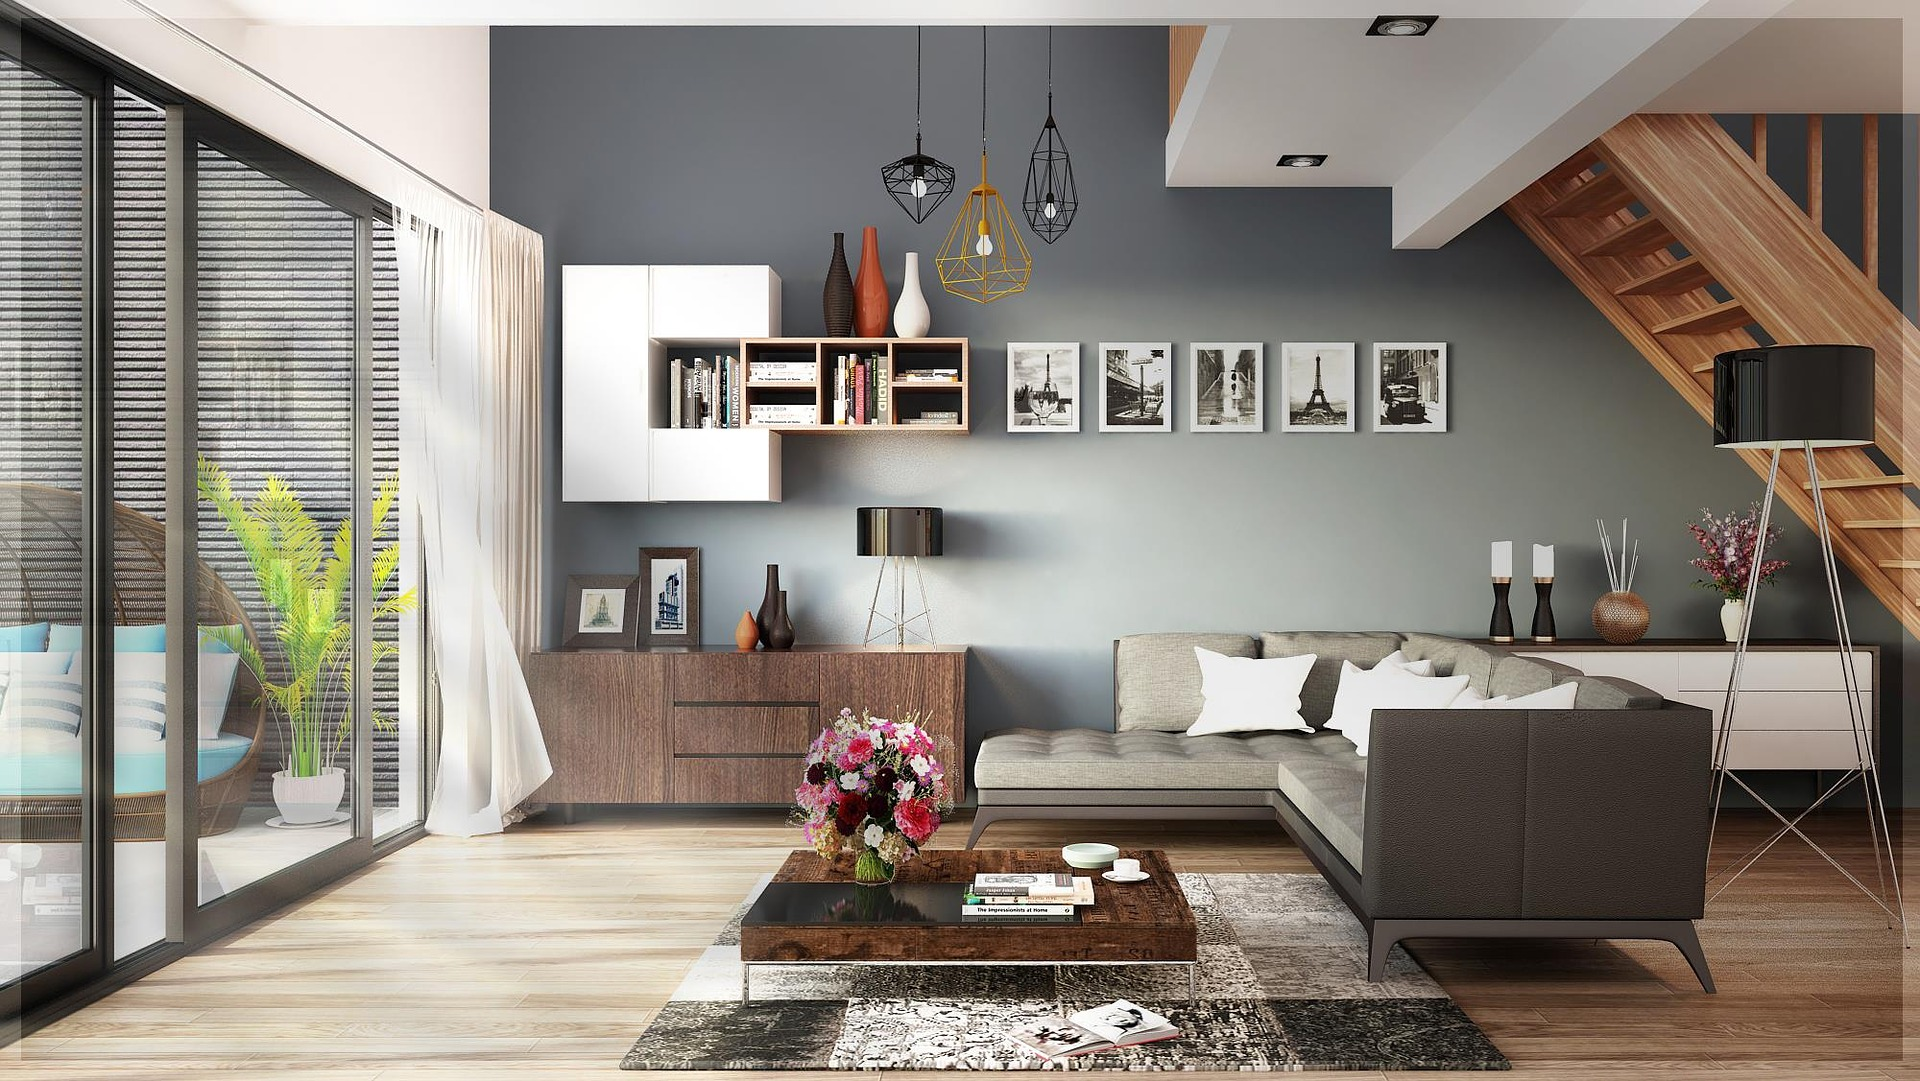 Interior designing inspiration ideas from world s top for Top 10 interior design blogs